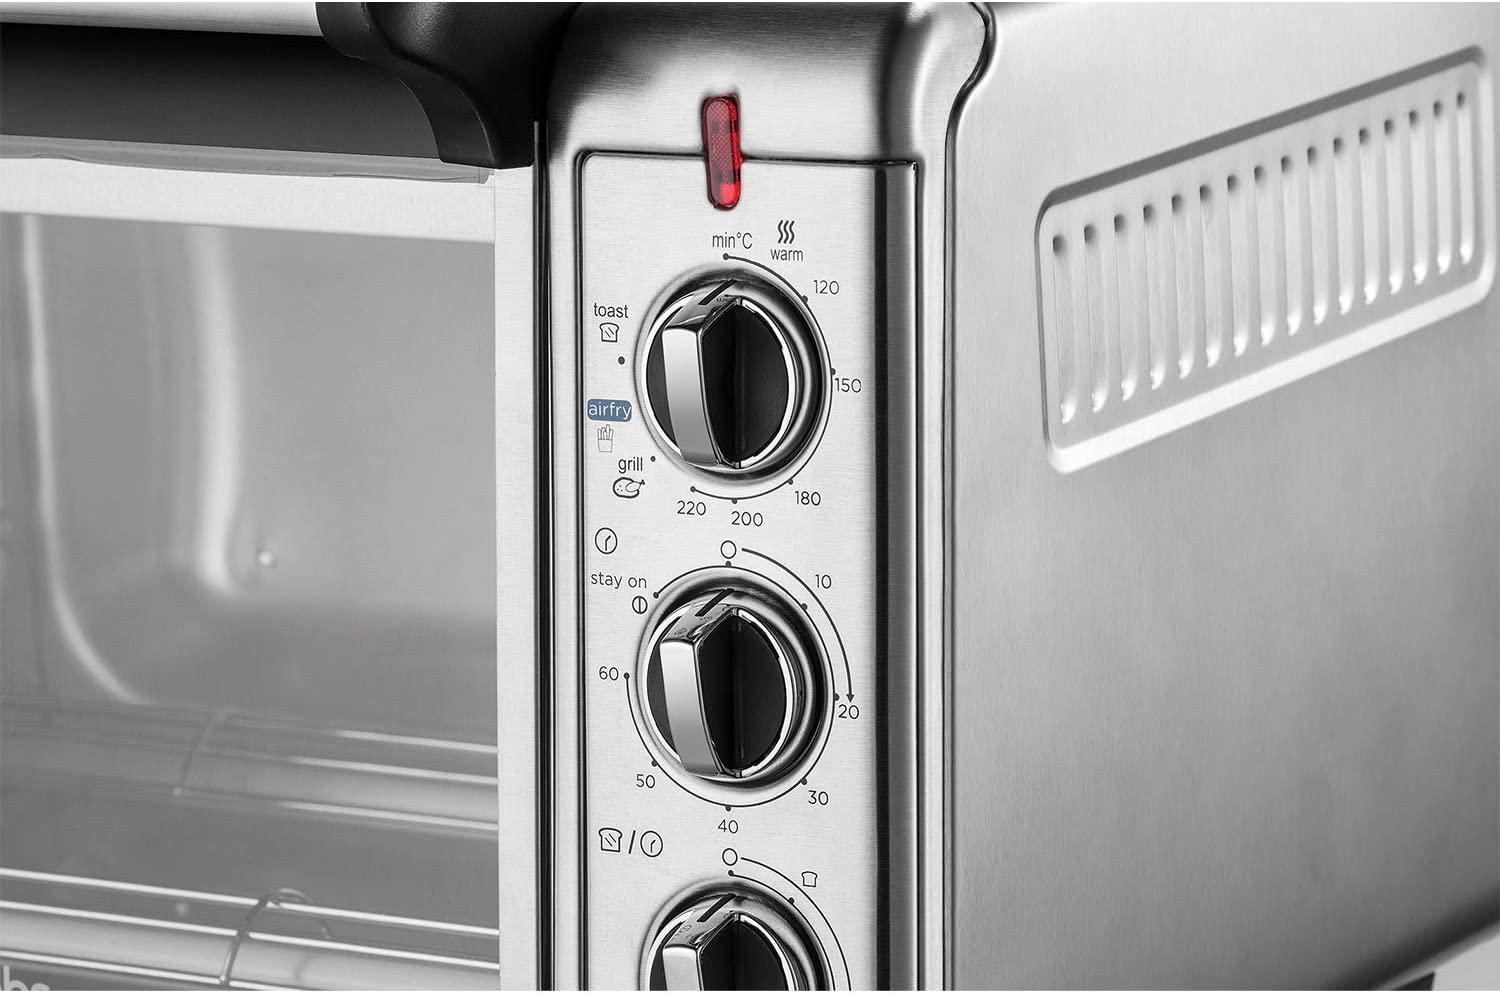 1500 W 12.6 liters Russell Hobbs 26095 Mini Oven Stainless Steel